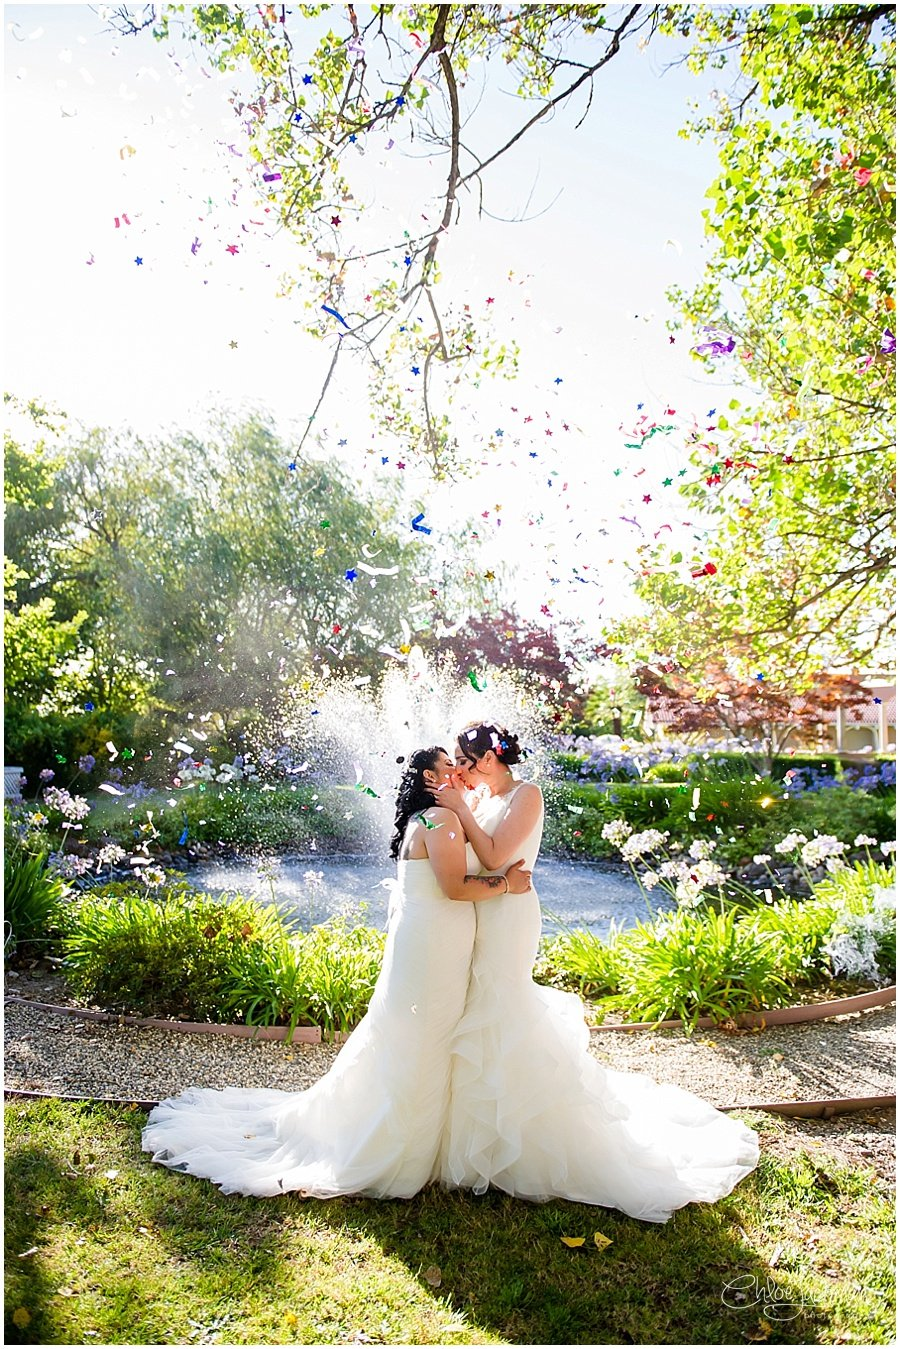 Brides embracing with confetti